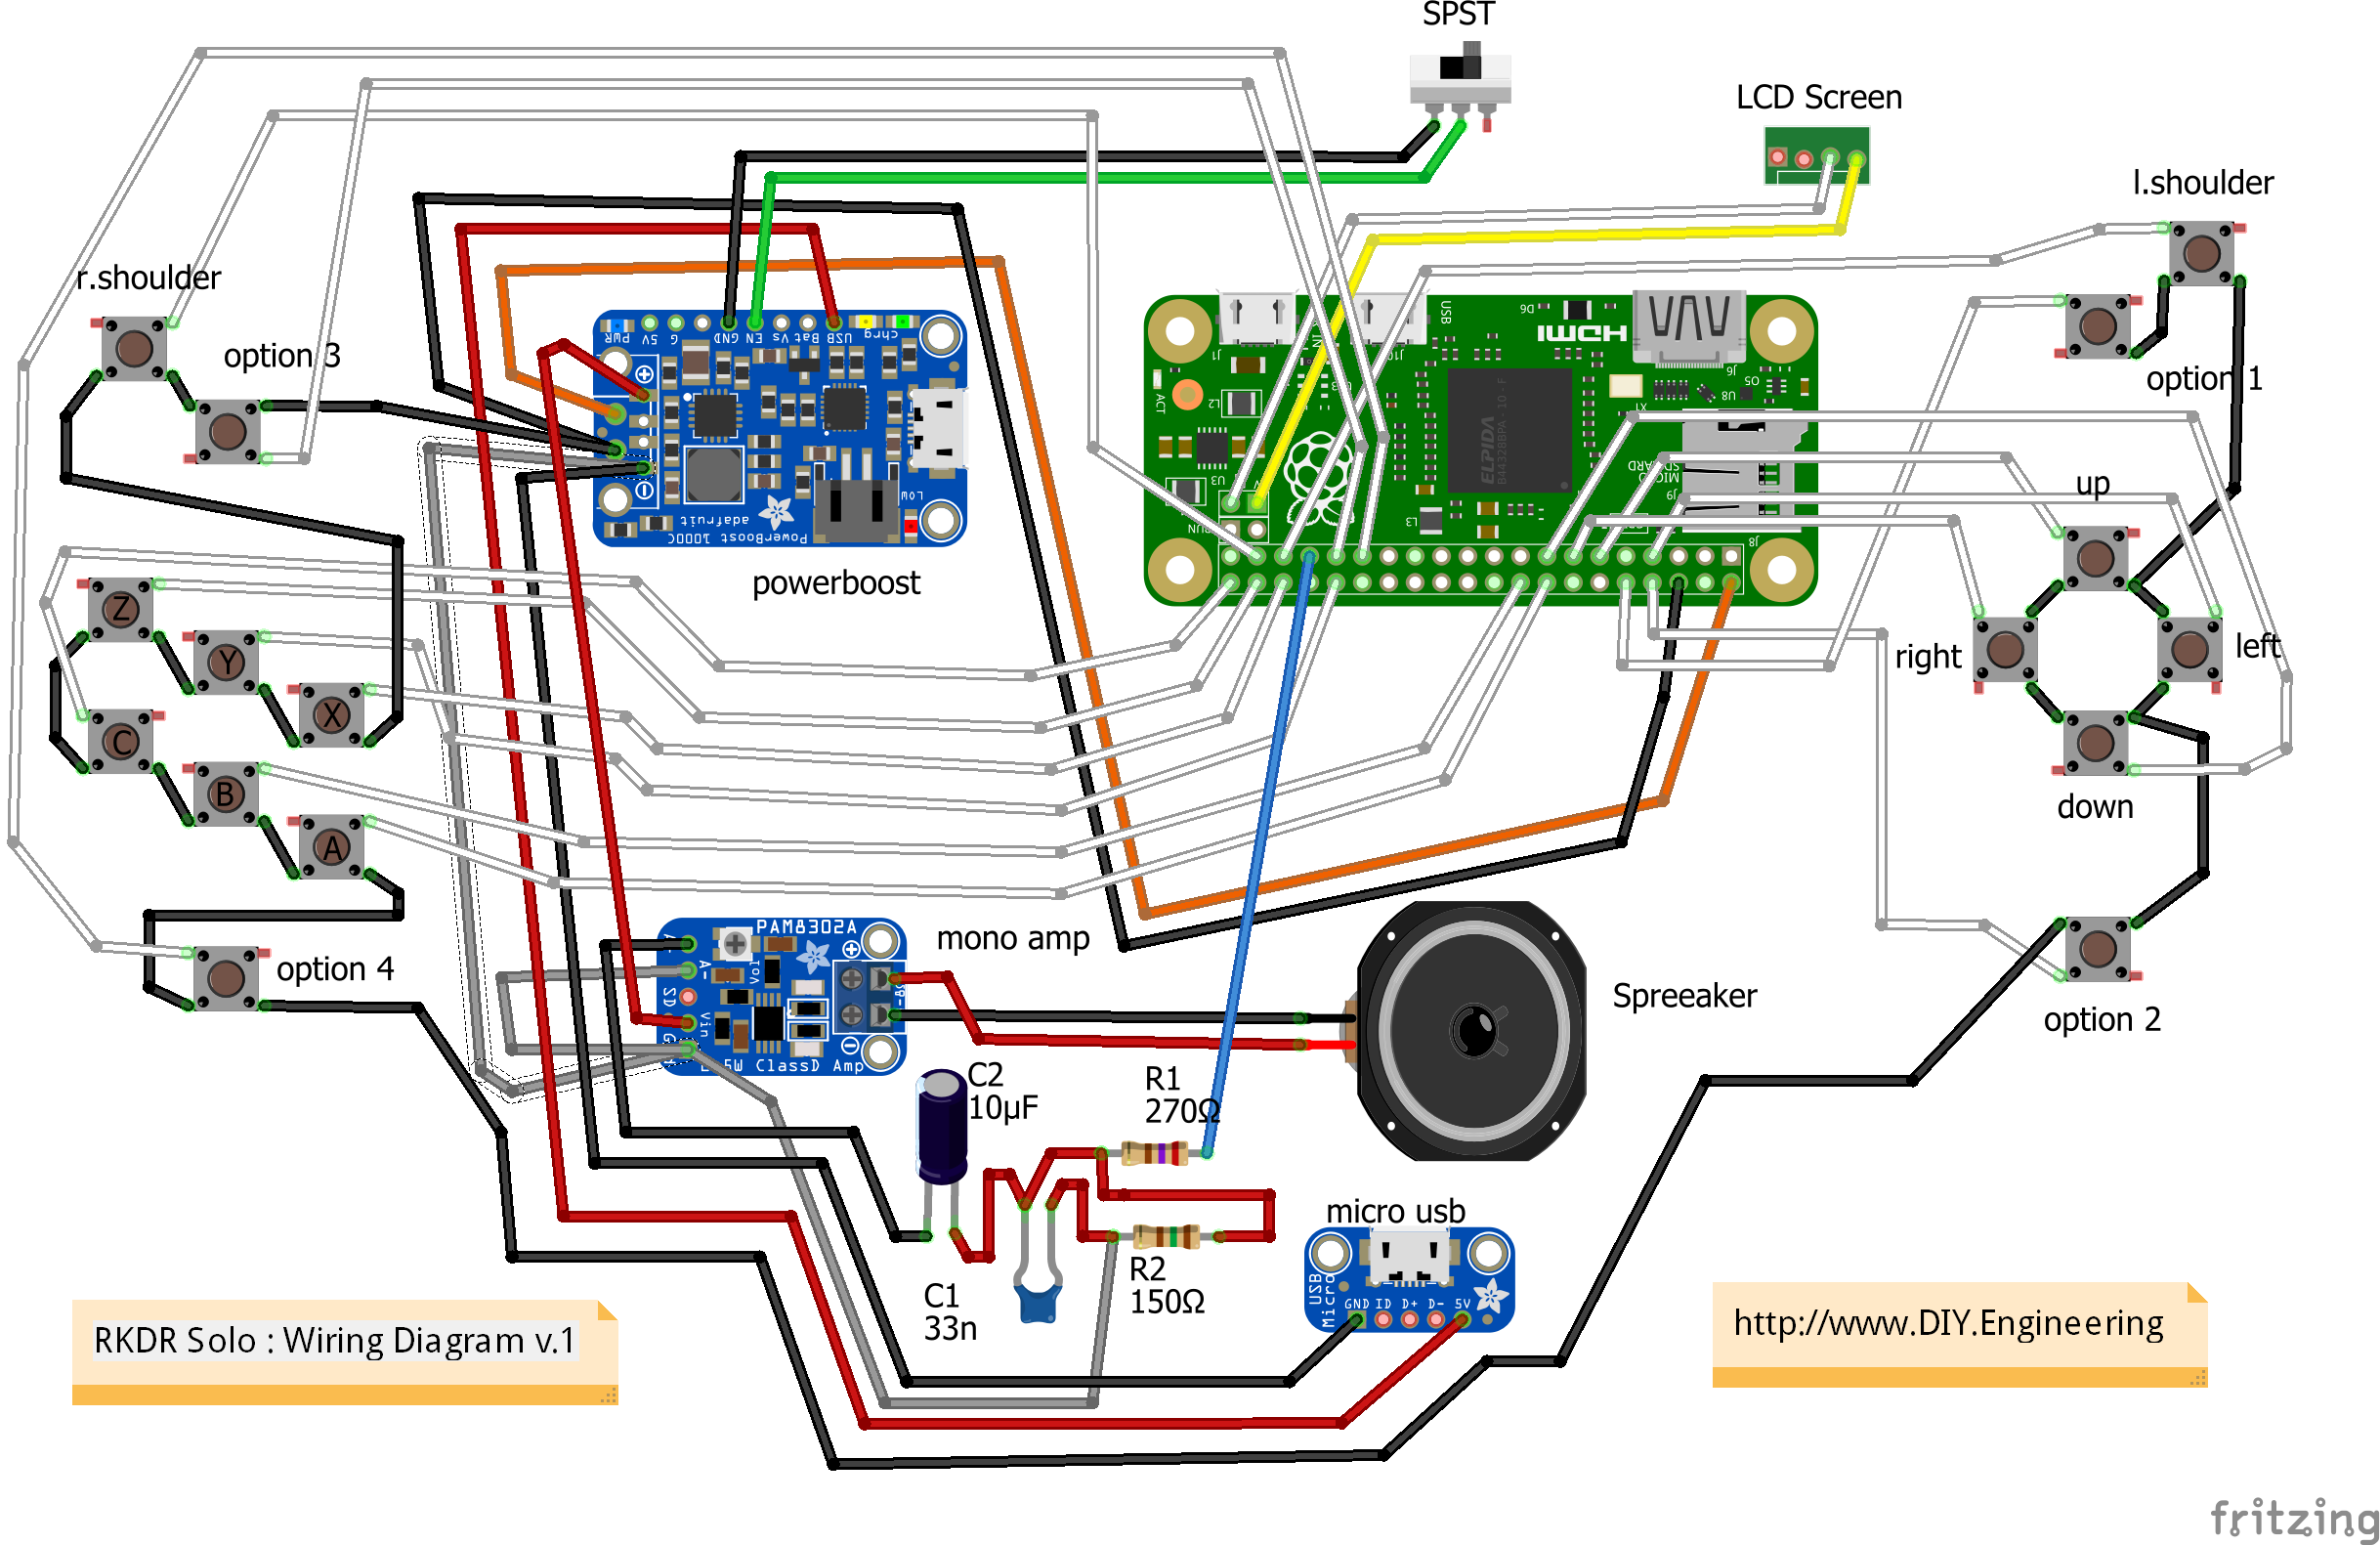 RKDR_Solo_wiring_diagram.png